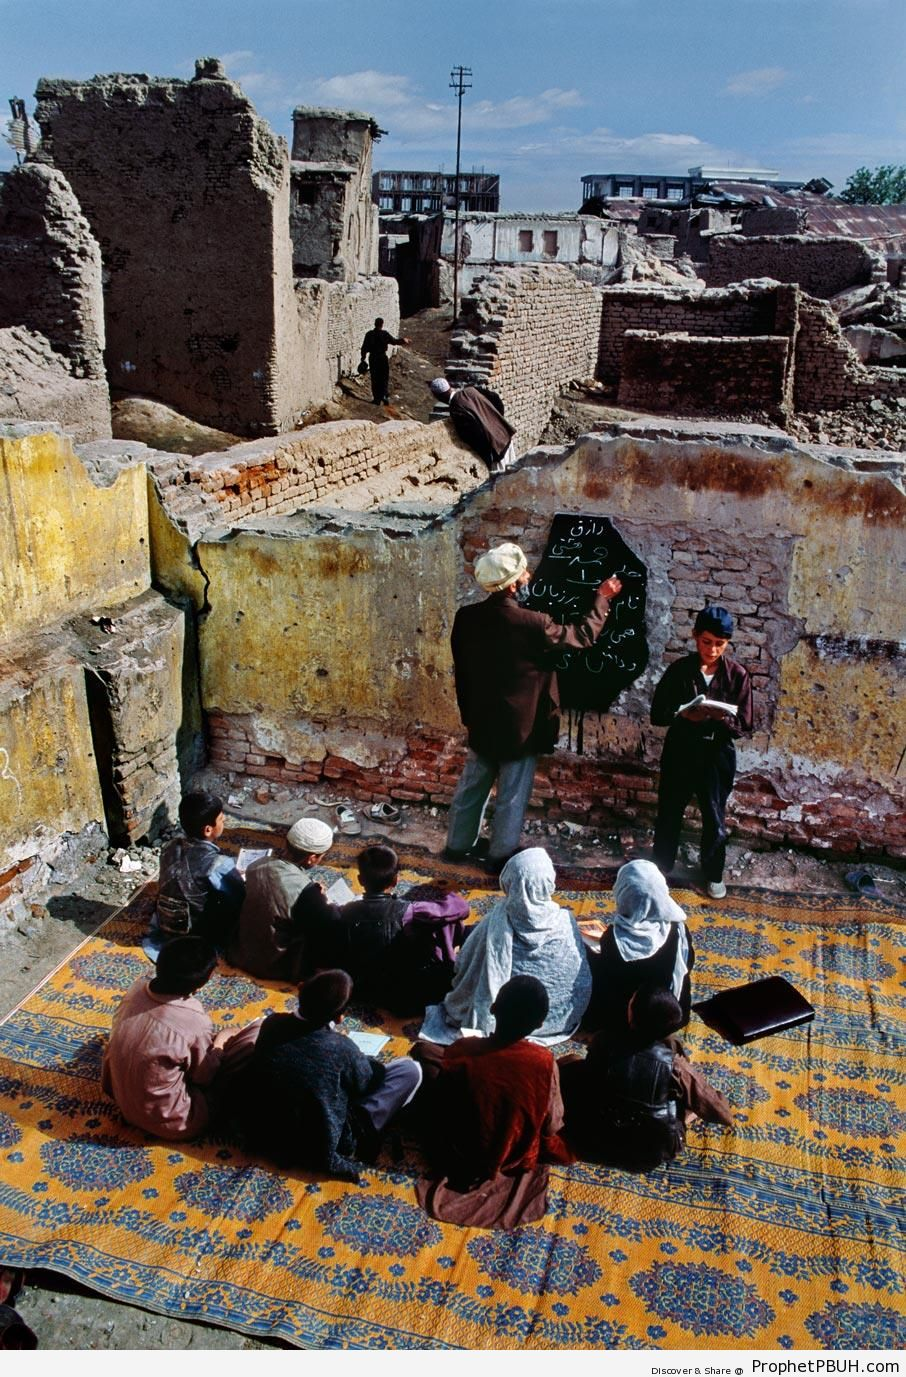 Afghan Children Attending Class in Ruins (Kabul, Afghanistan) - Muslimah Photos (Girls and Women & Hijab Photos) -